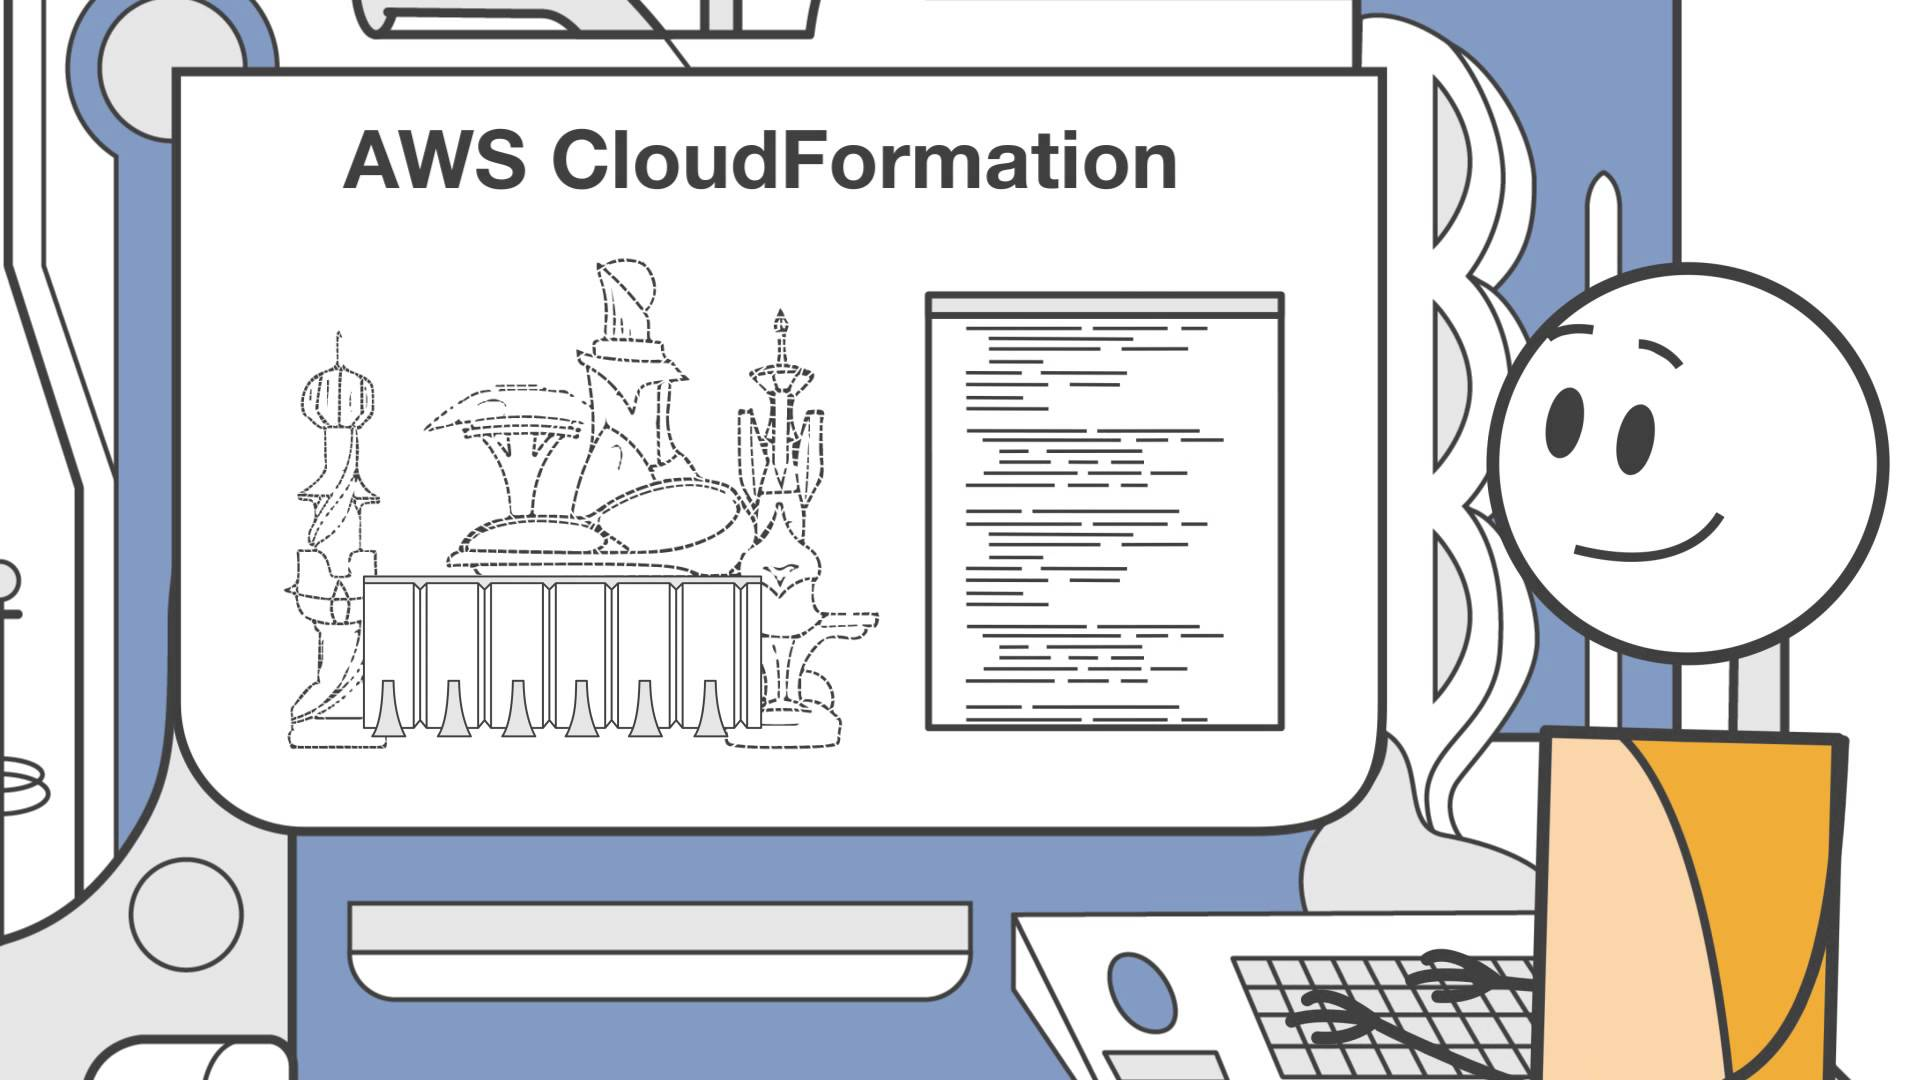 aws cloudformation templates aws cloudformation tutorial. Black Bedroom Furniture Sets. Home Design Ideas